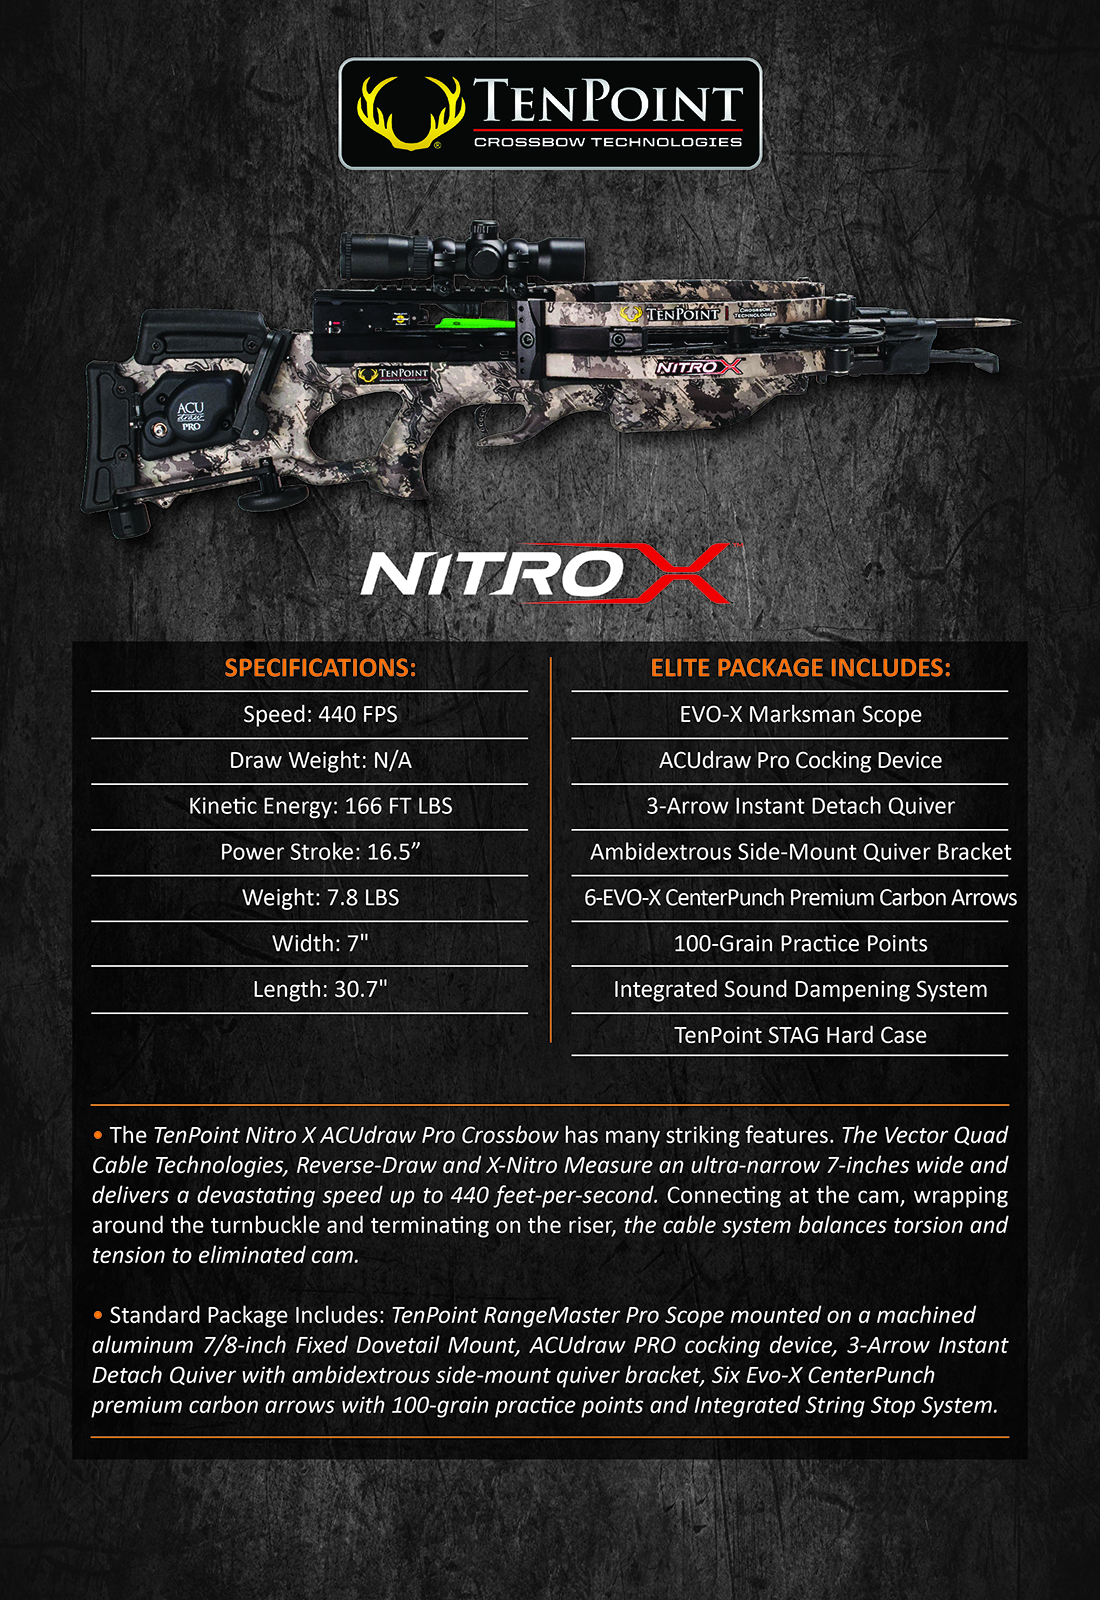 TenPoint_Nitro_X_ACUdrawPro_Product_Description